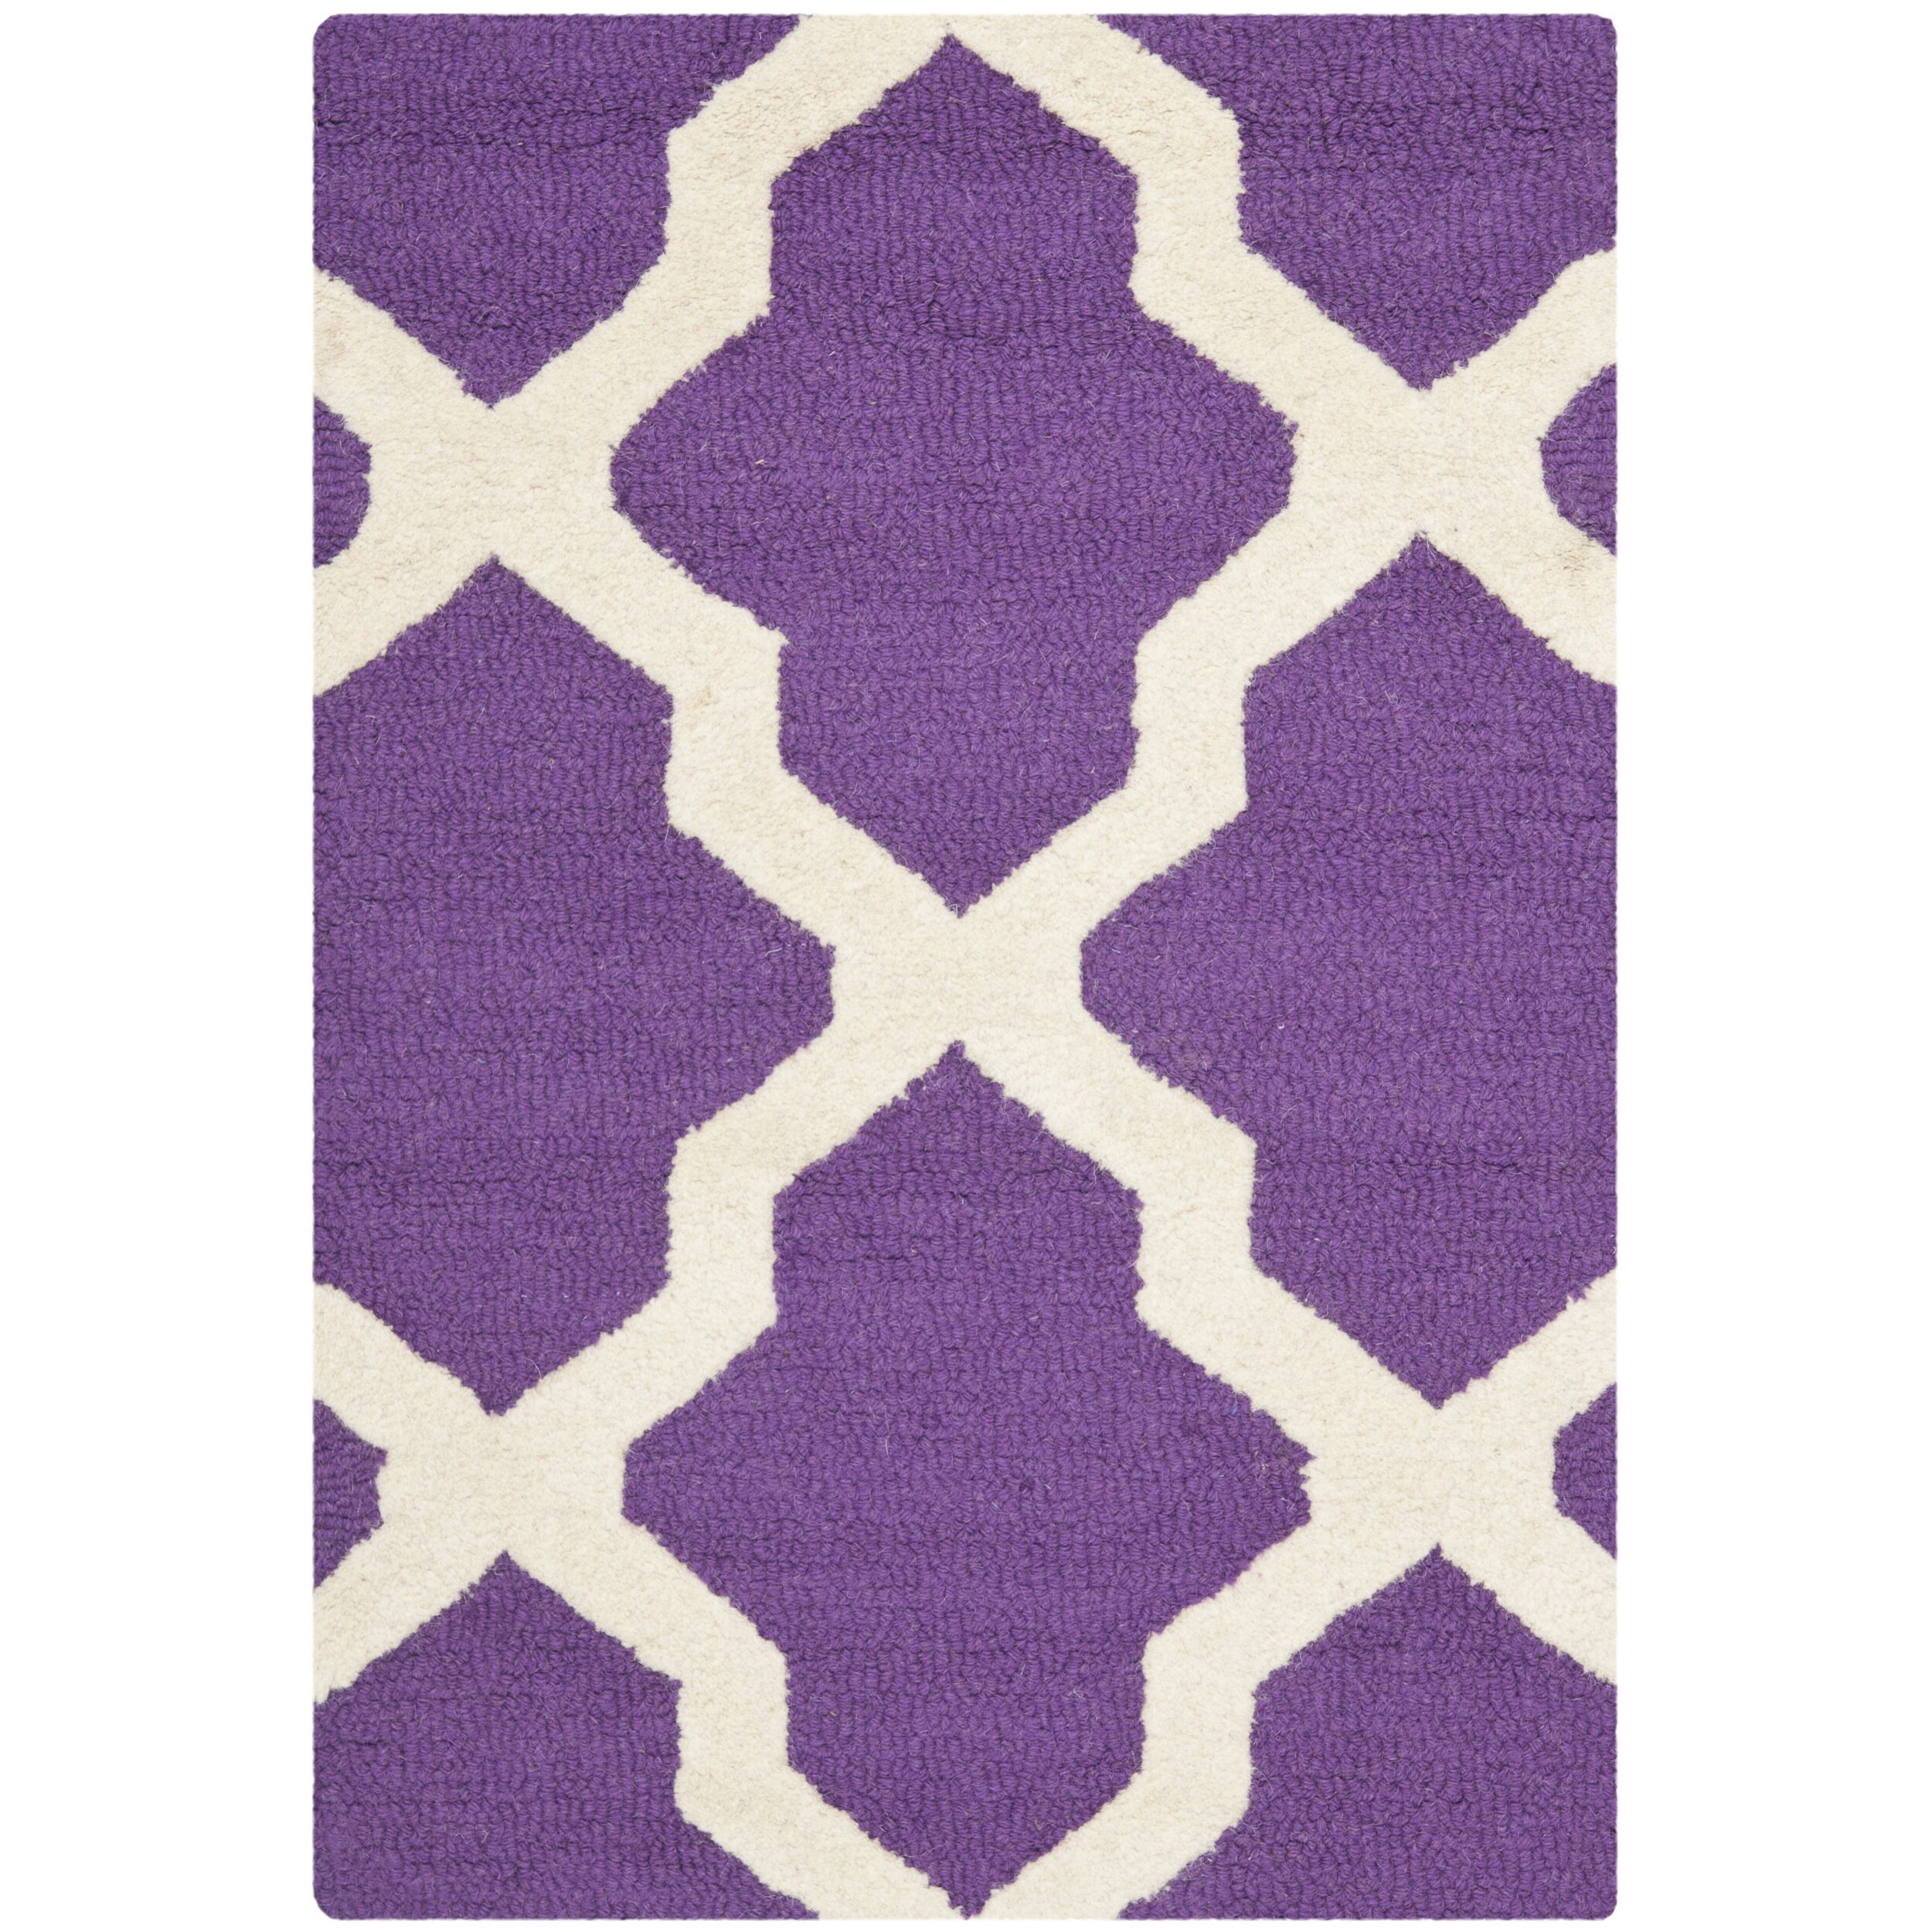 Xl Purple Rug: Varick Gallery Martins Purple / Ivory Area Rug & Reviews